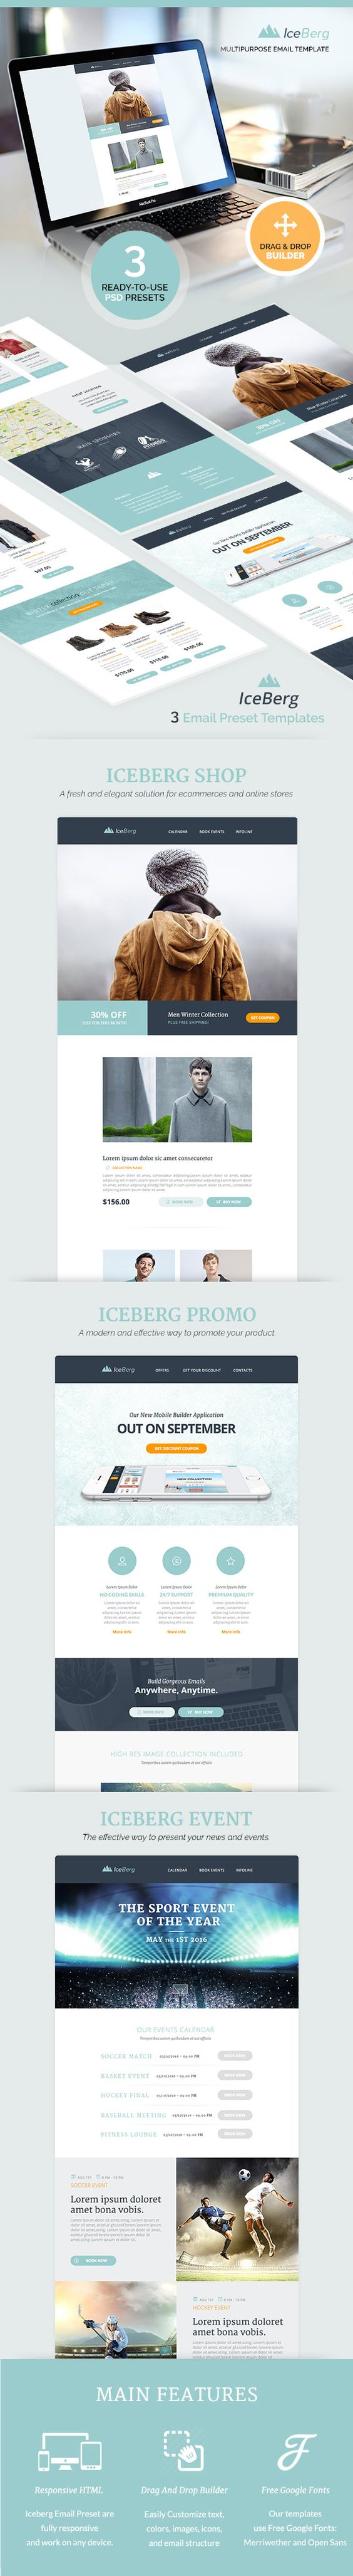 Iceberg Responsive Email Templates Builder Marketing - 2 column responsive email template